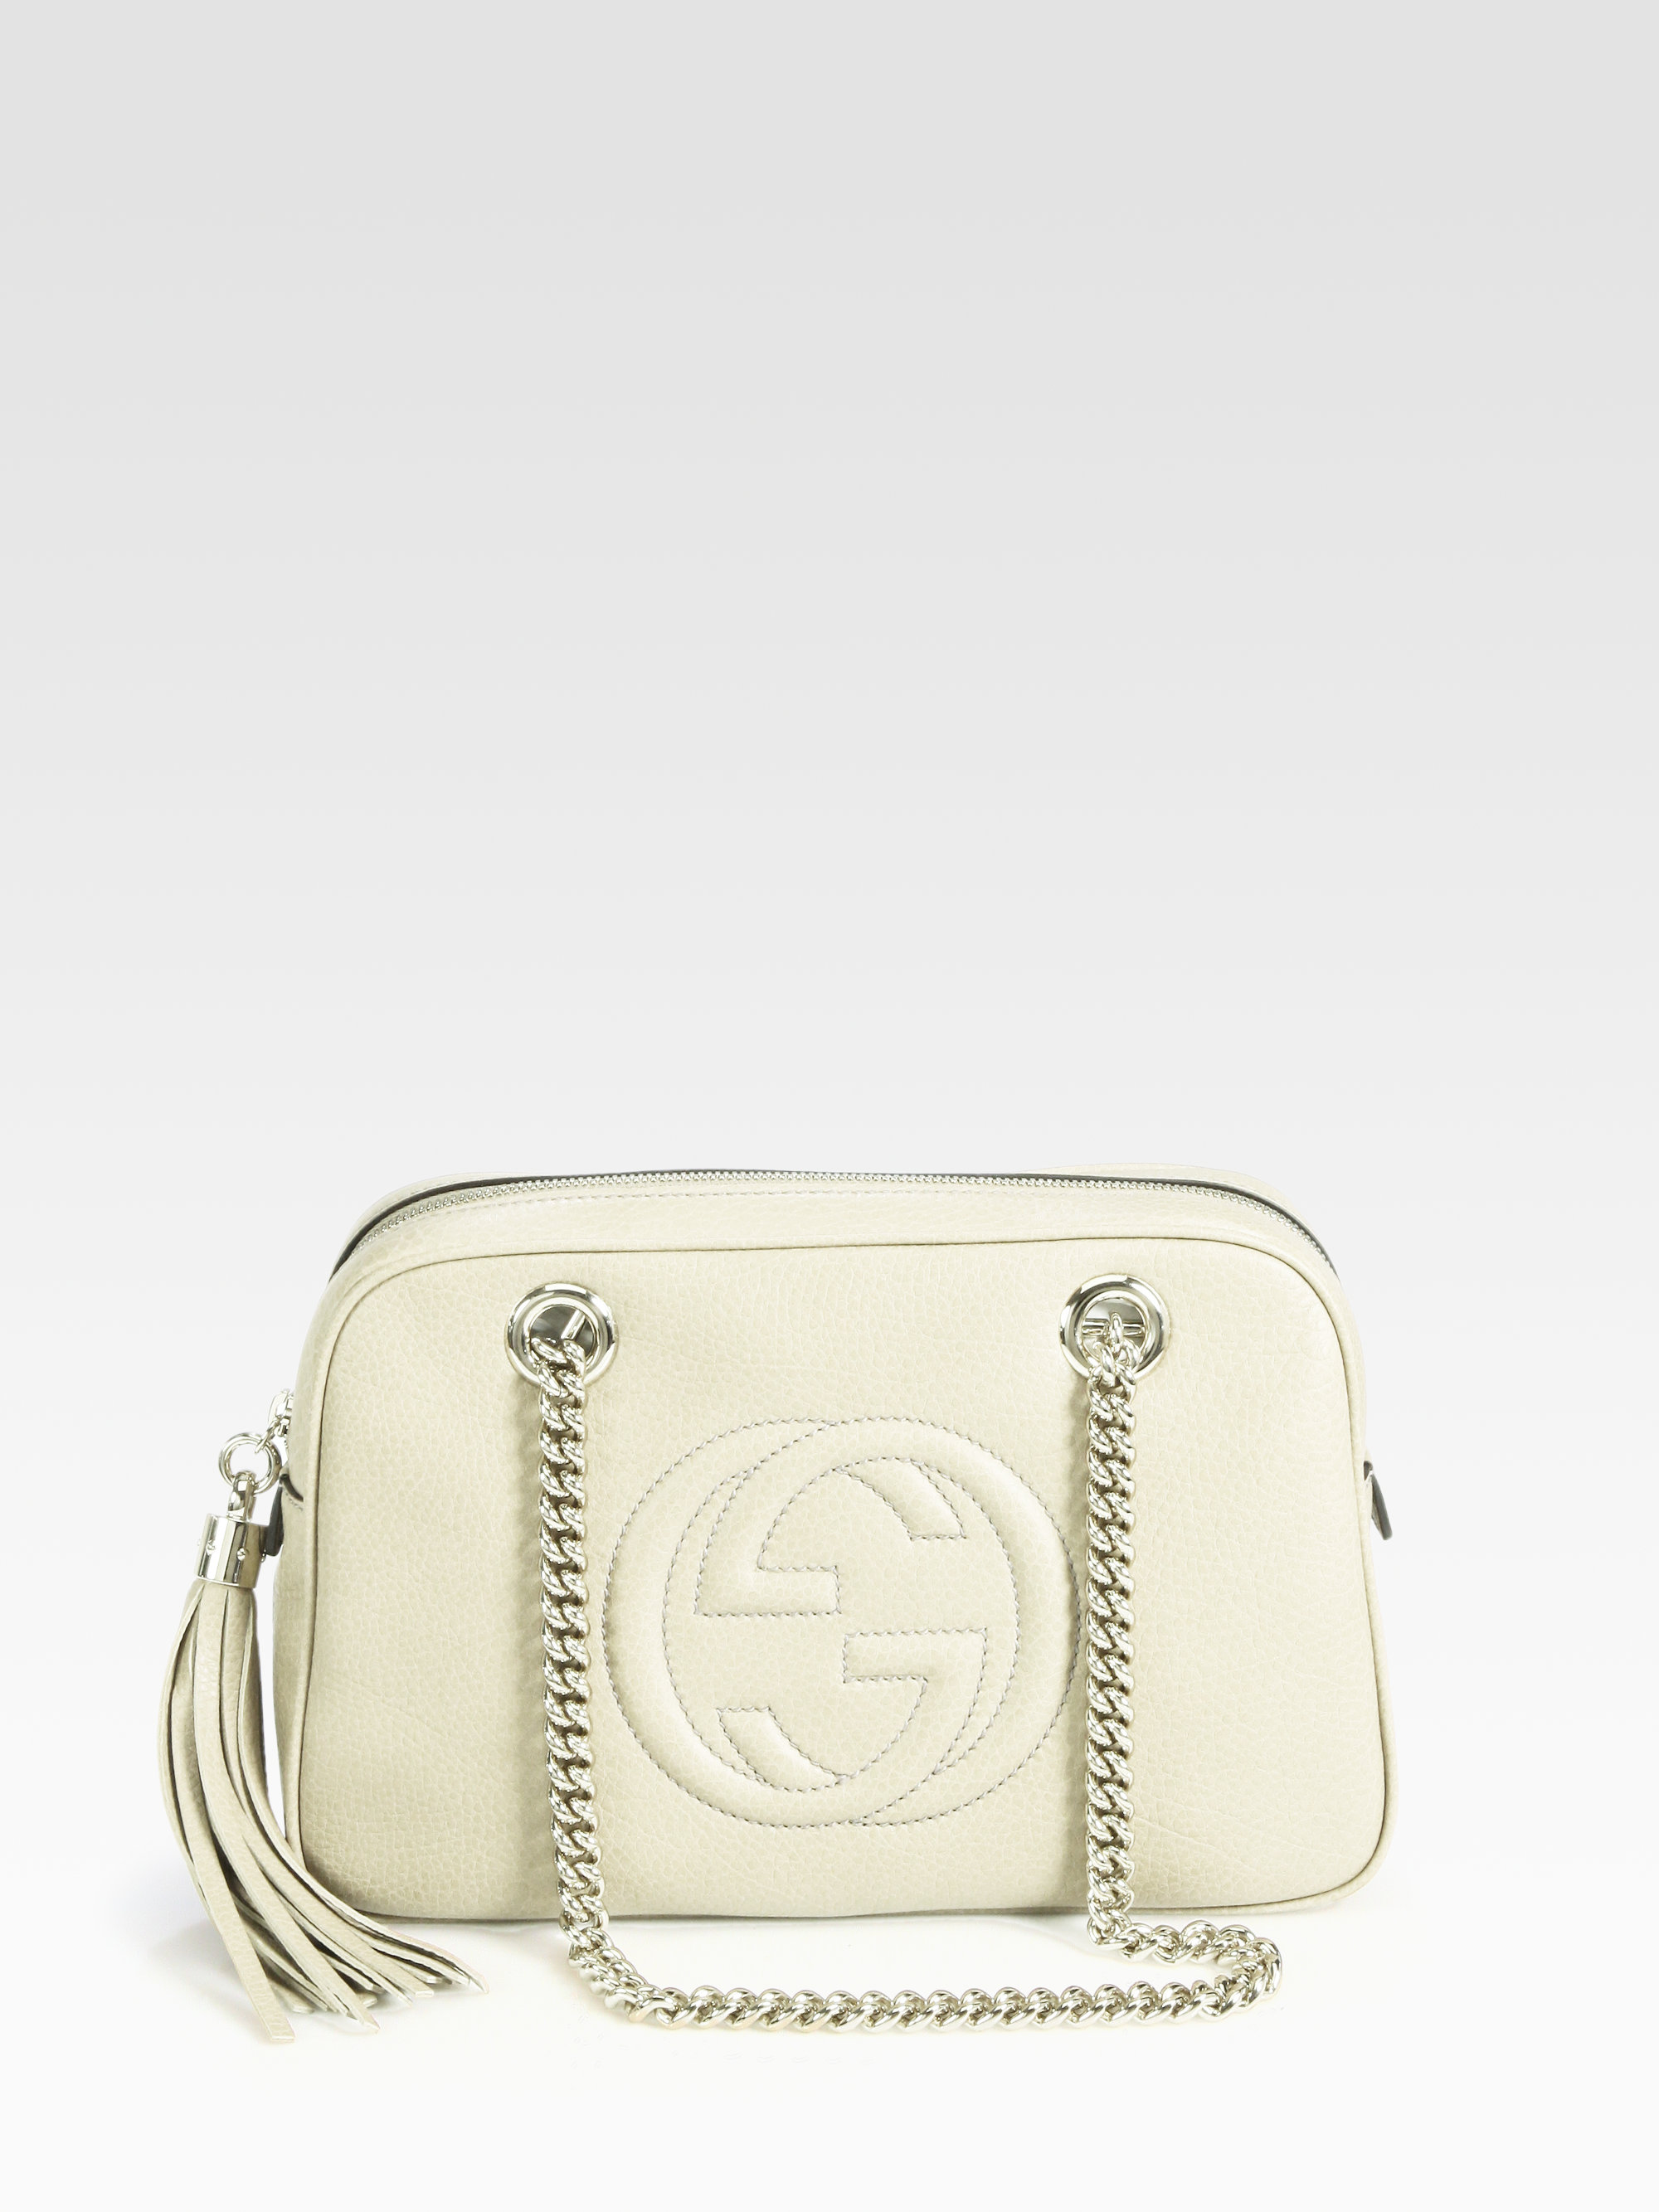 1490cb5554c Gucci Soho Leather Shoulder Bag in White - Lyst